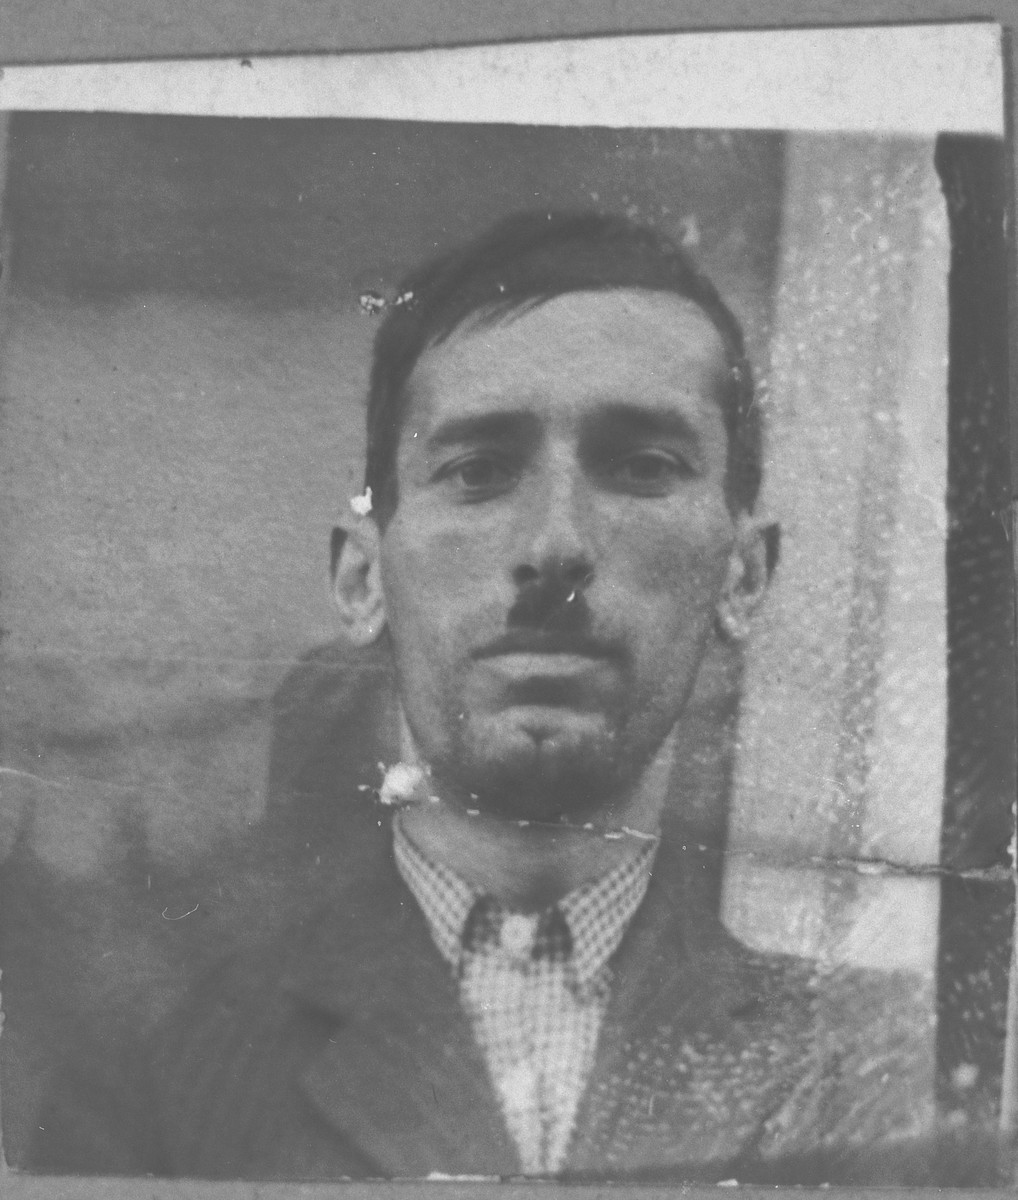 Portrait of Yosef Ergas, son of Solomon Ergas.  He was a basketweaver.  He lived at Dalmatinska 78 in Bitola.